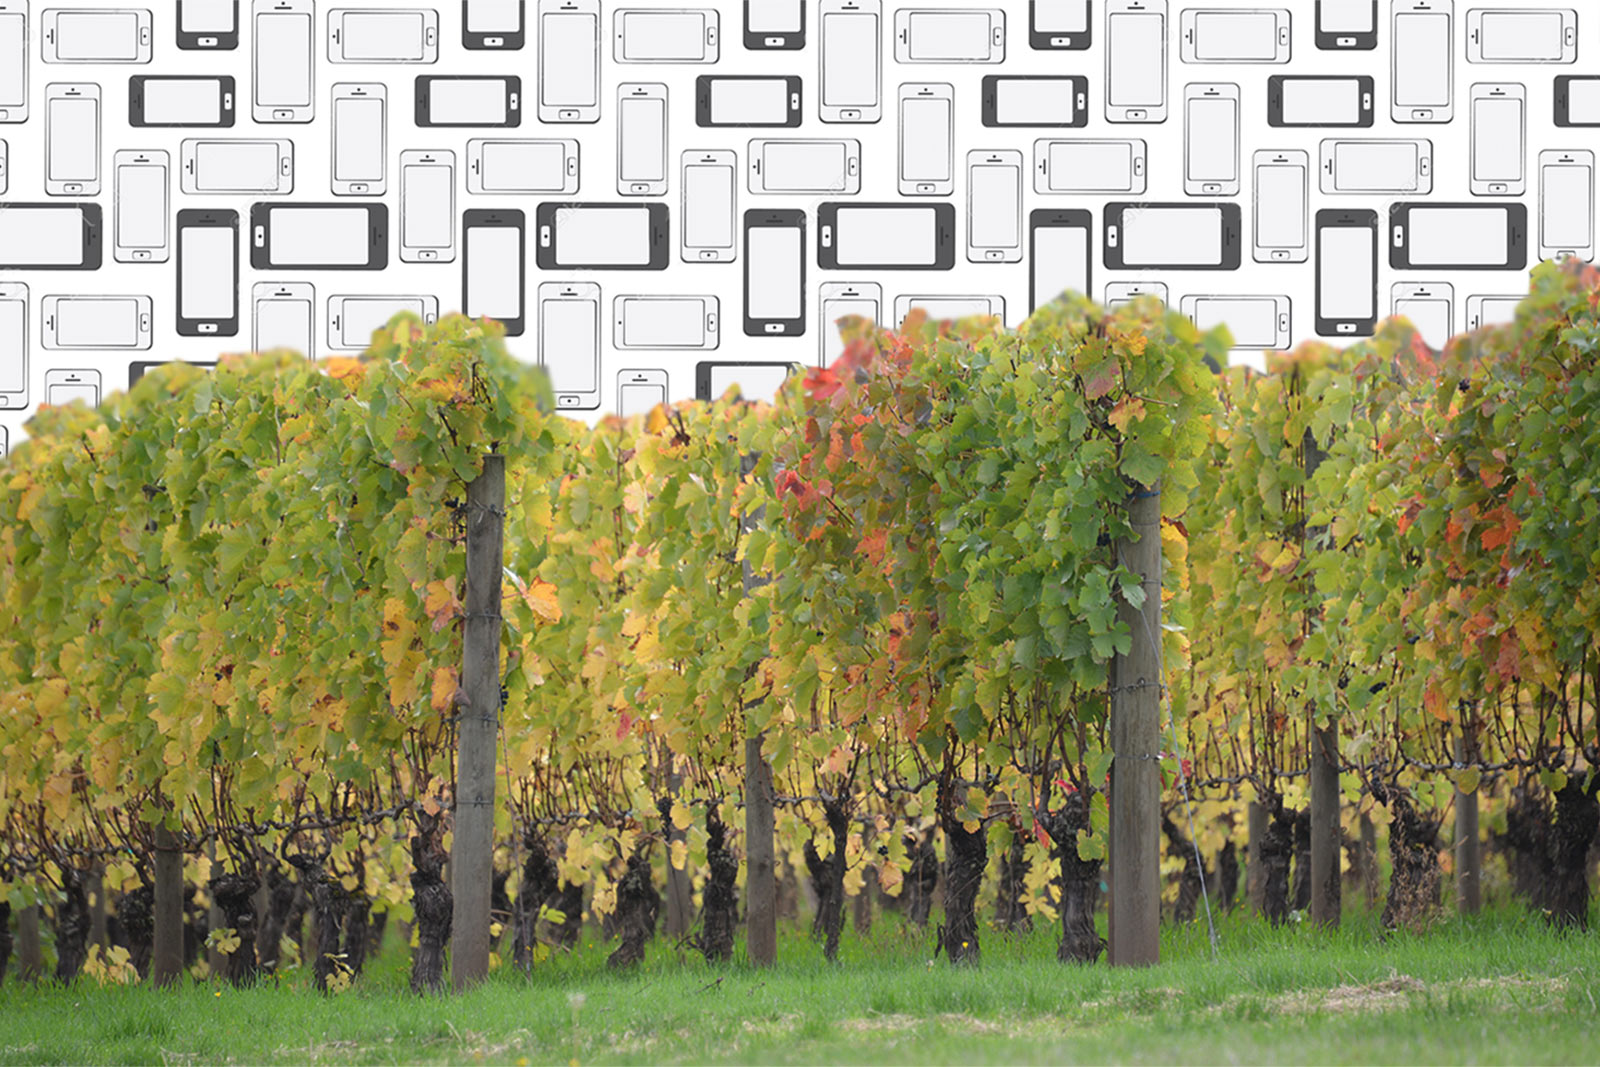 Mobile Responsive Websites for Wineries